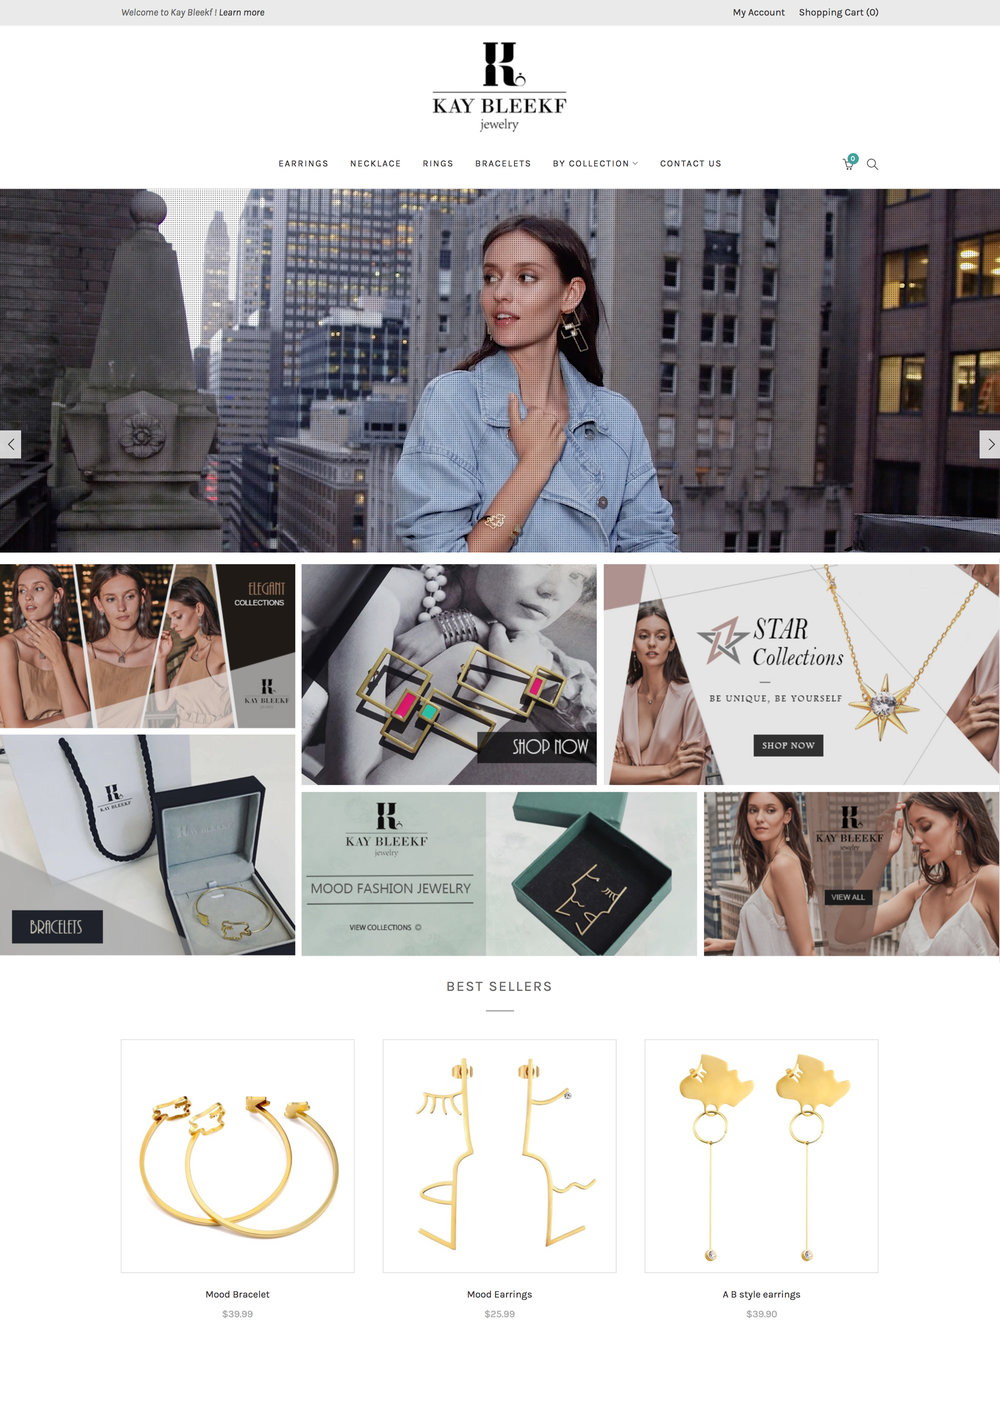 KayBleekf    One-stop online and in stores worldwide Jewelry fashion destination.